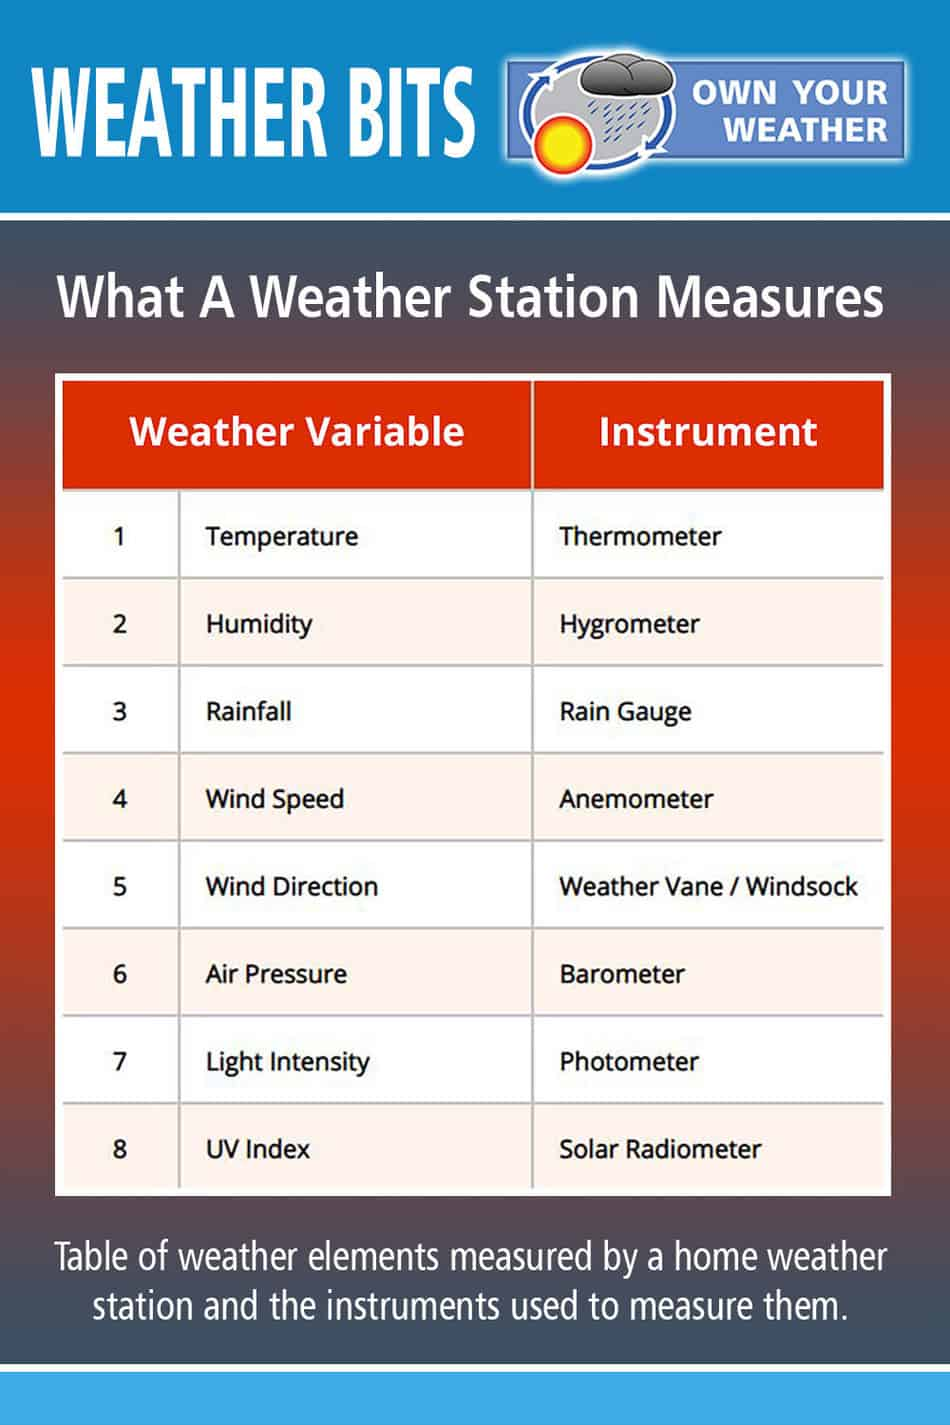 What A Weather Station Measures